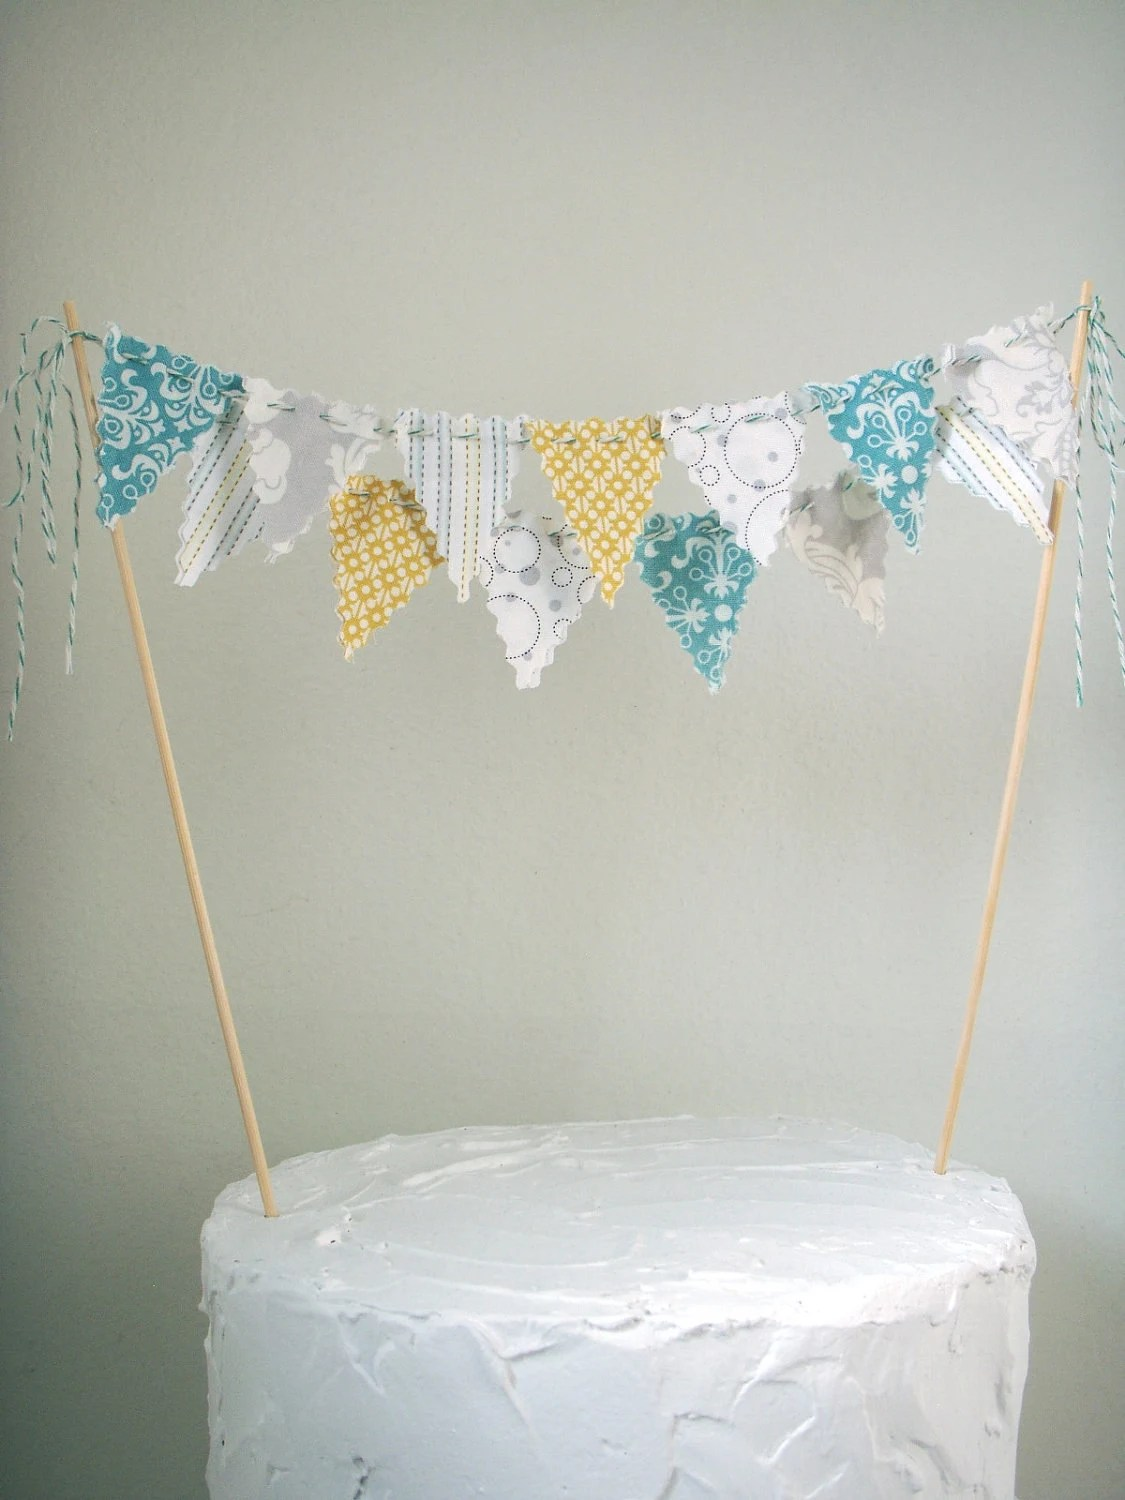 how to make a baby shower chair old fashioned step stool cake bunting topper grey yellow aqua white